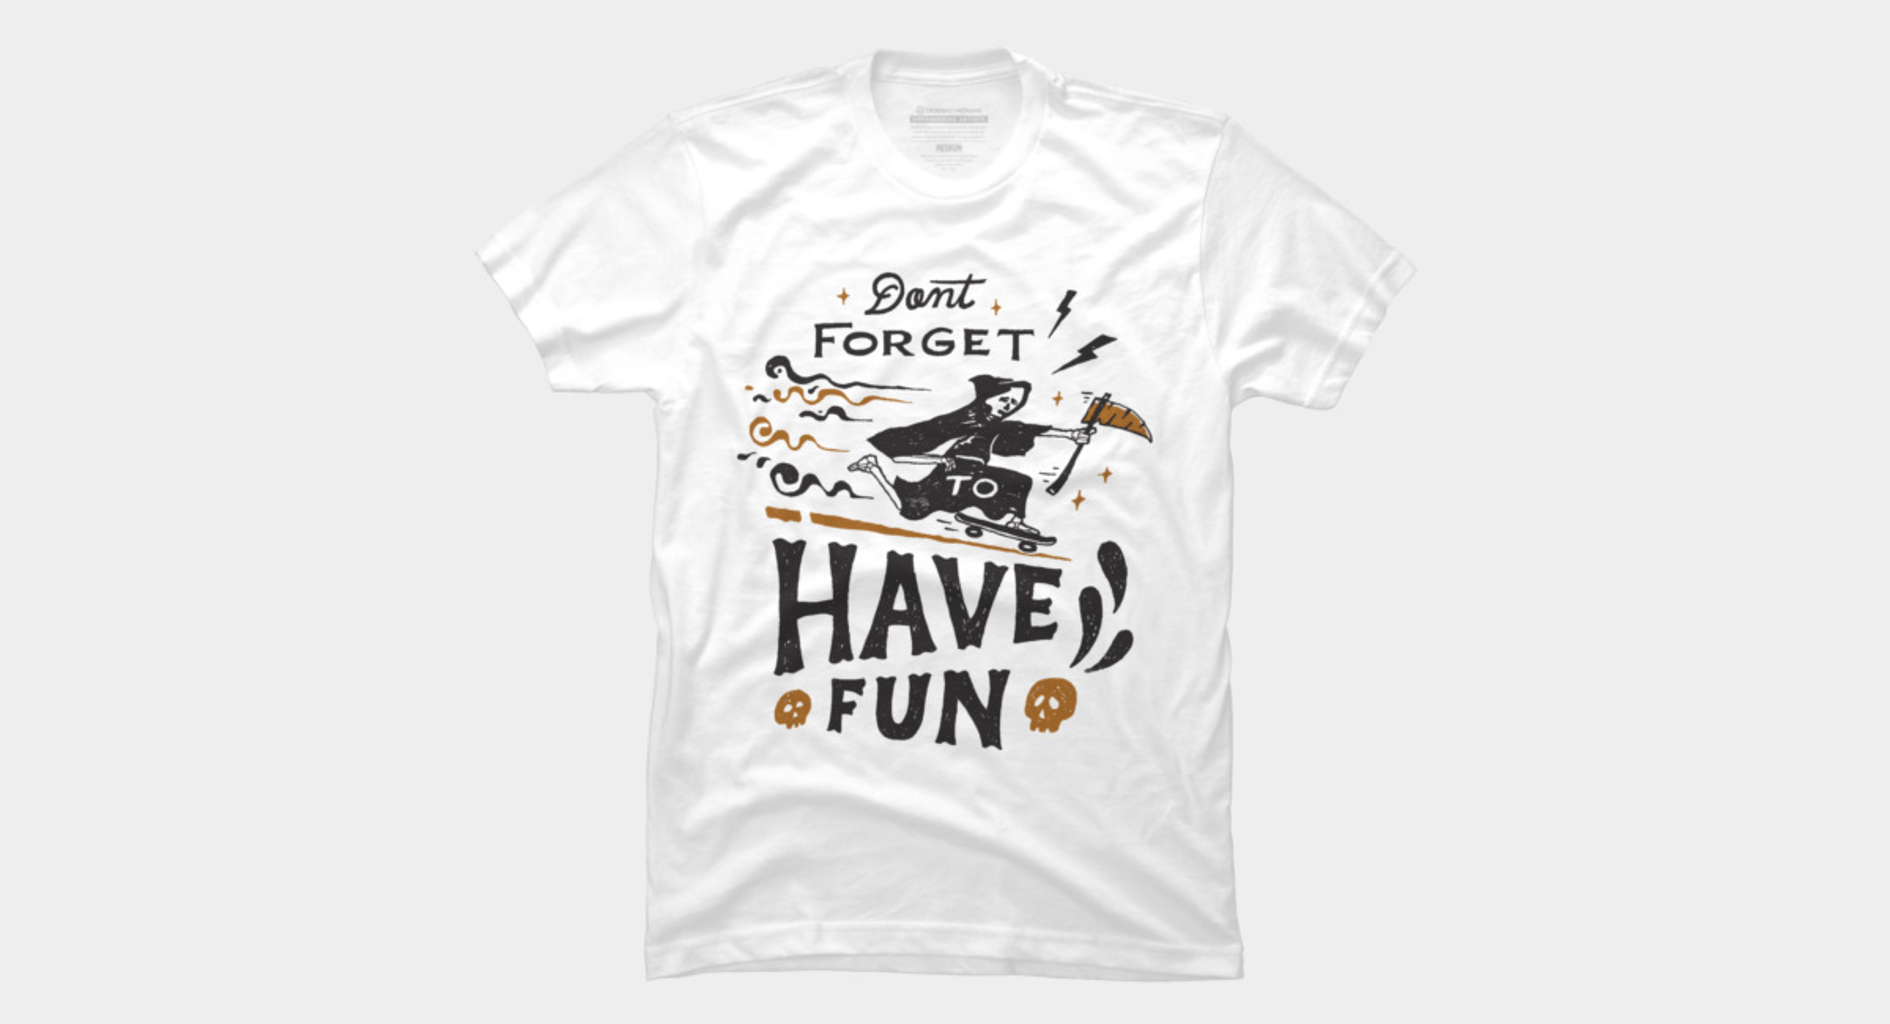 Design by Humans: Have Fun